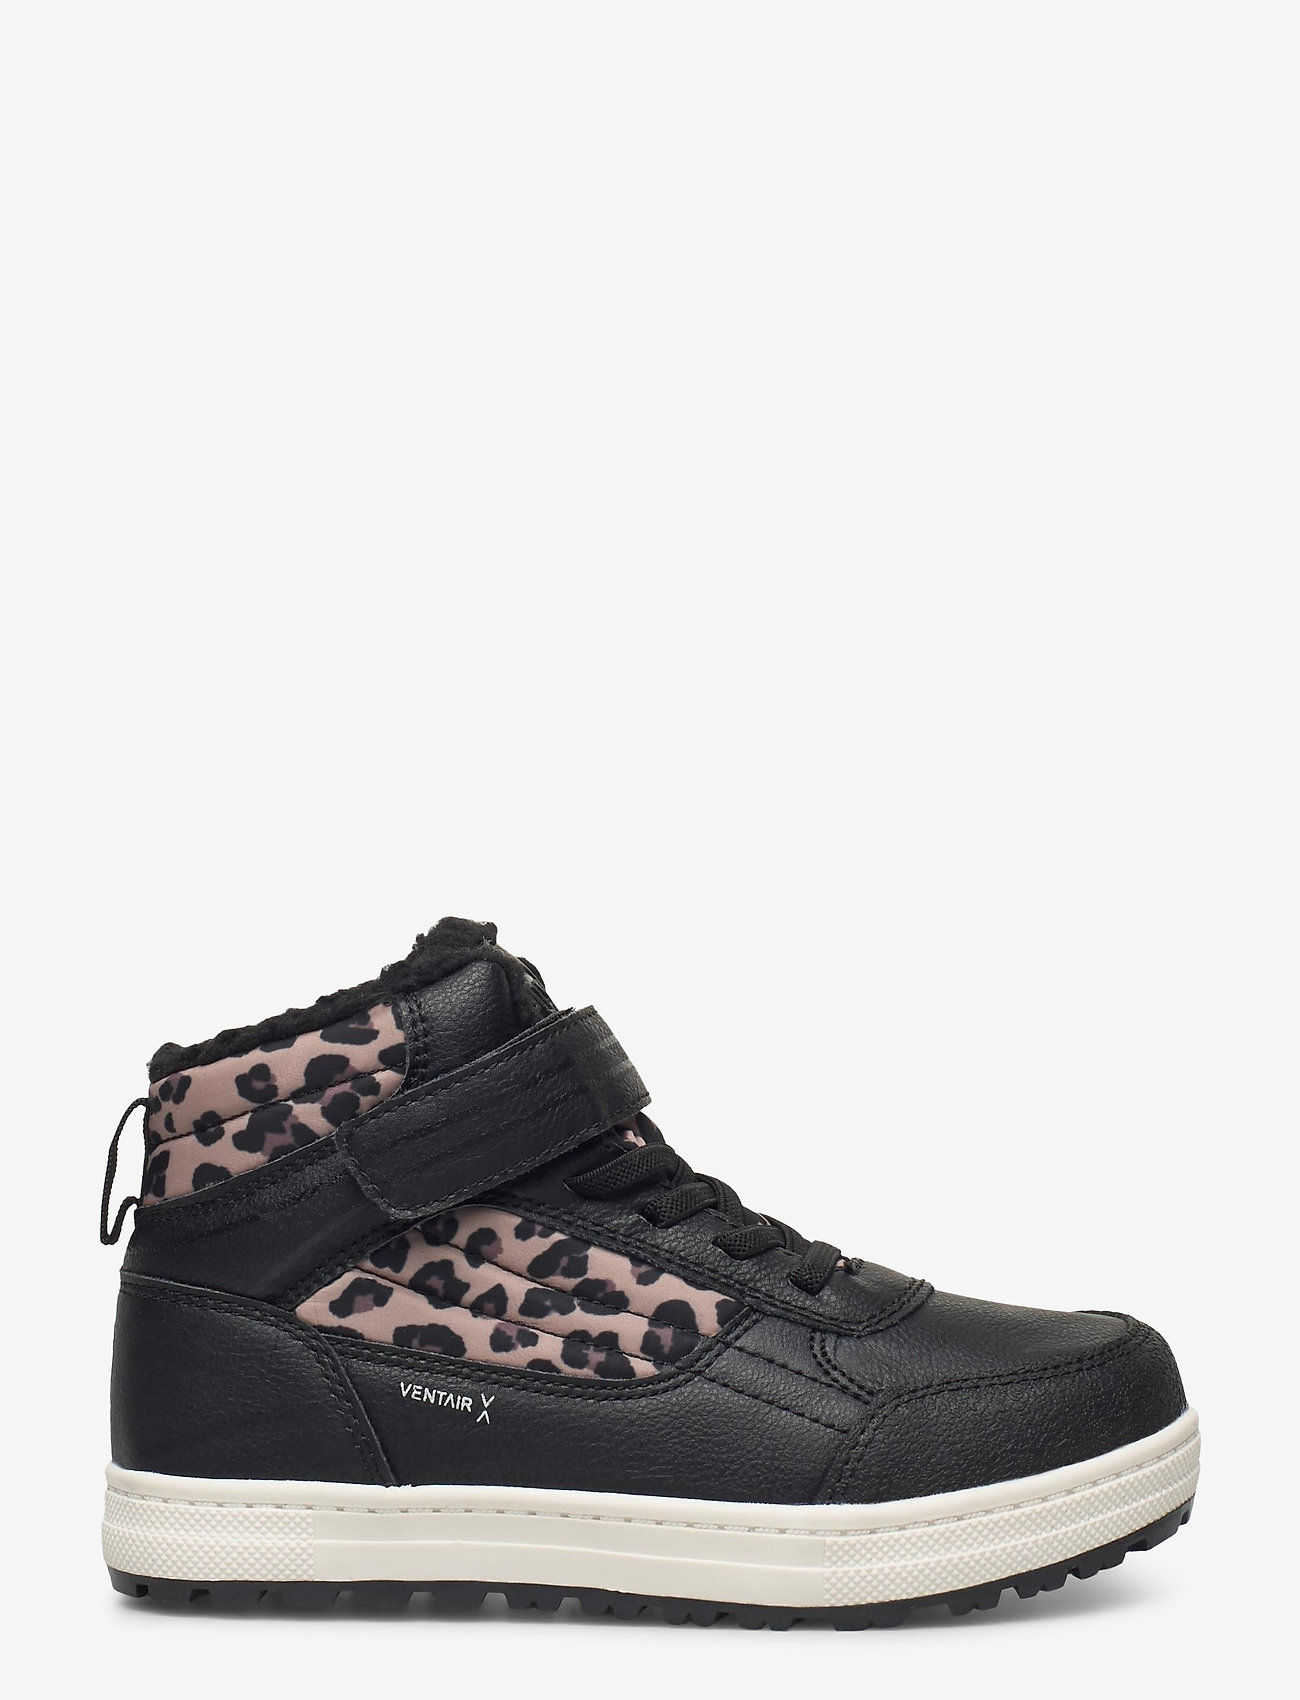 PAX - CHILLA PAX KÄNGA - high tops - black/leo - 1